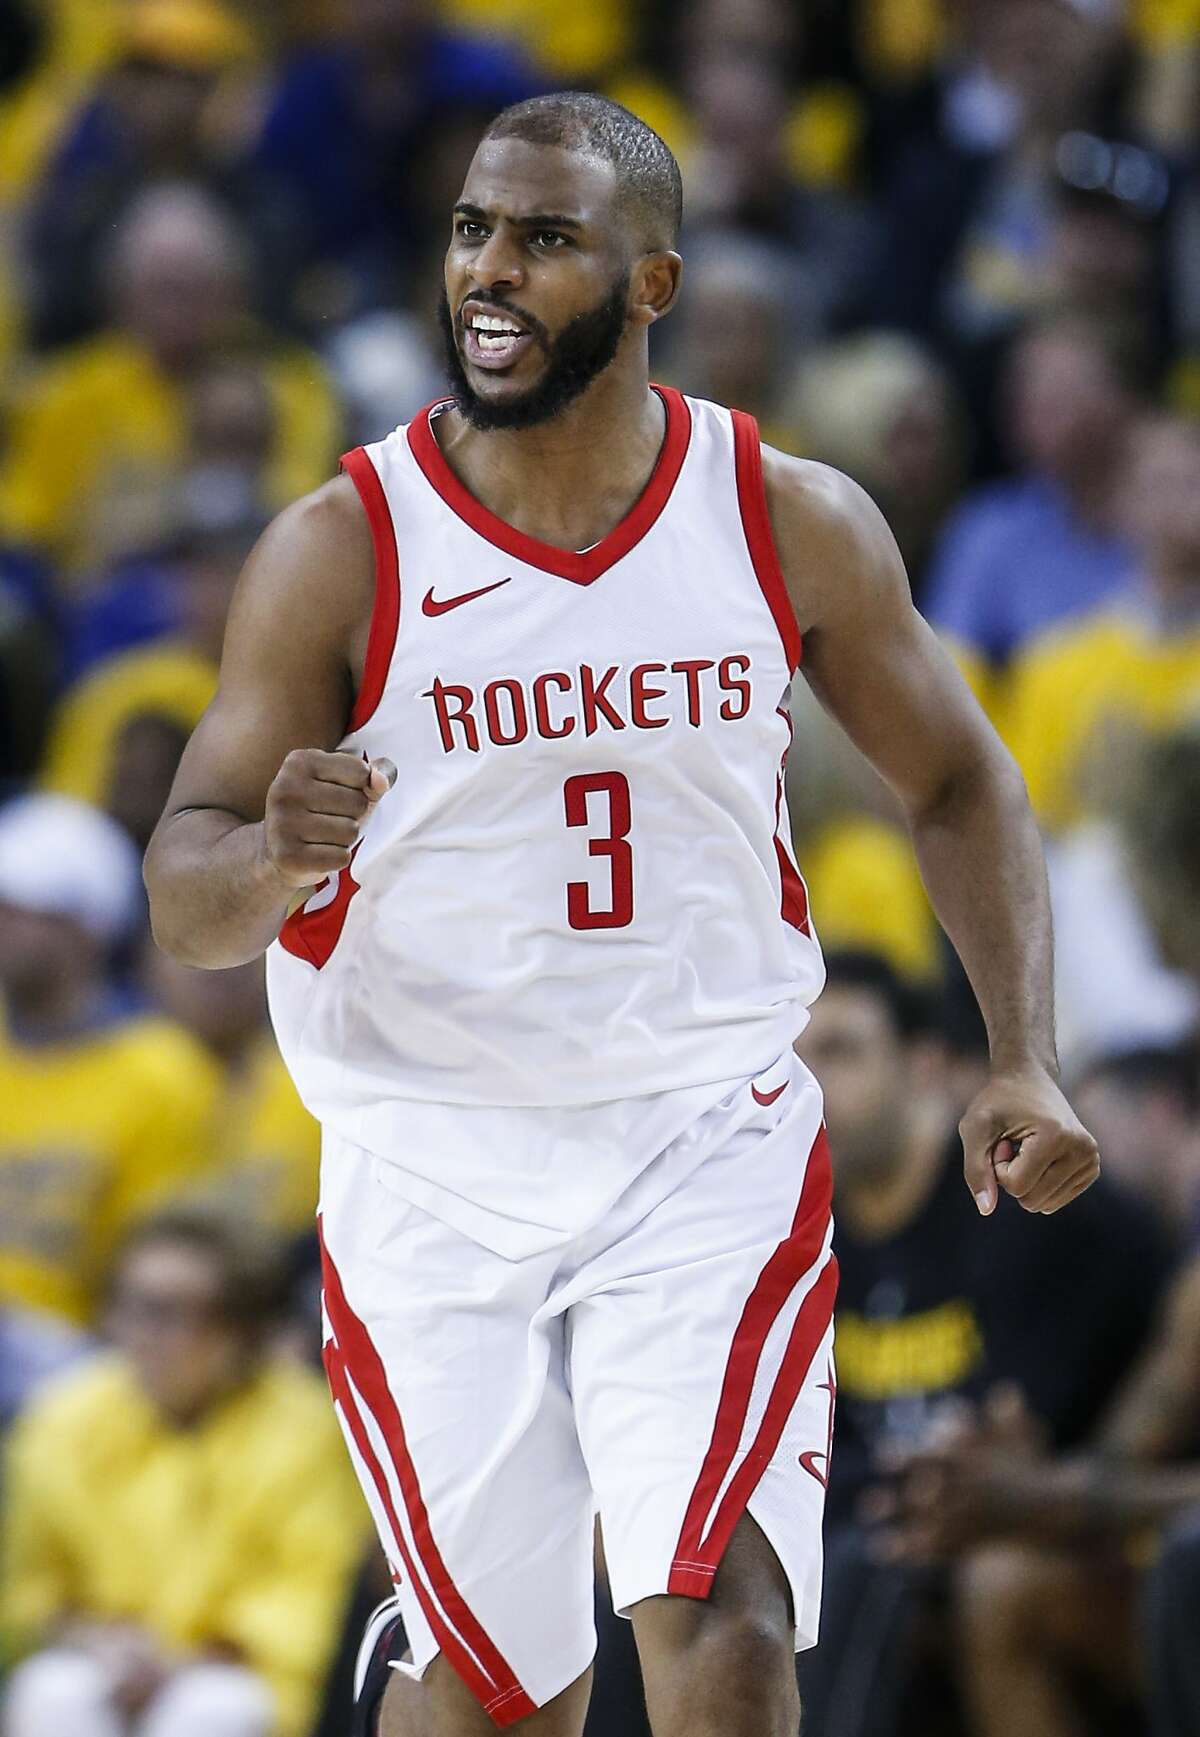 Houston Rockets guard Chris Paul (3) runs back up the court after scoring a 3-pointer against the Golden State Warriors during the second half of Game 4 of the Western Conference Finals at Oracle Arena Tuesday, May 22, 2018 in Oakland. (Michael Ciaglo / Houston Chronicle)